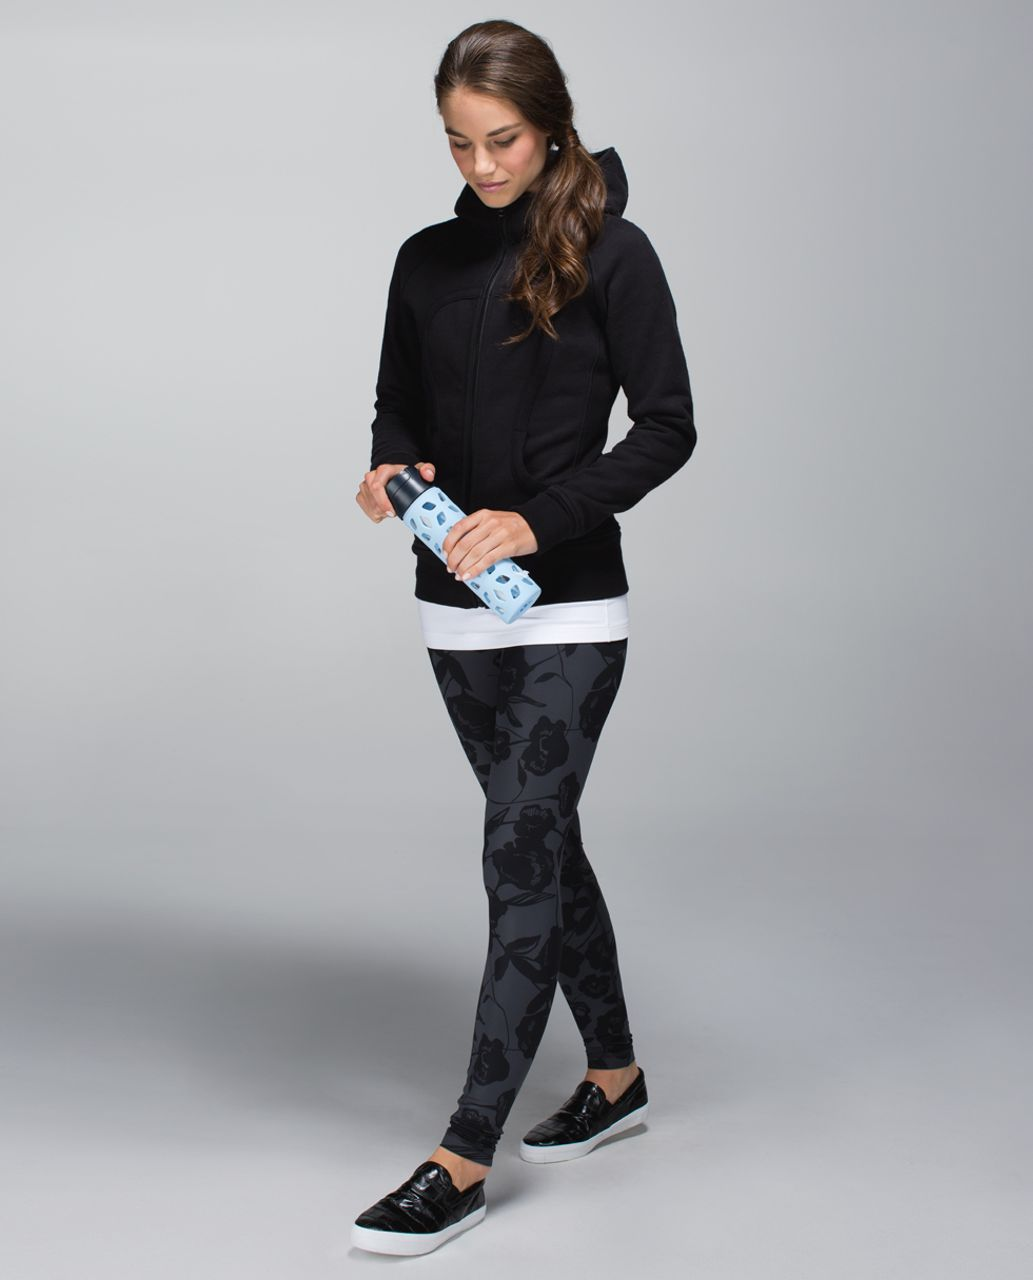 Lululemon Wunder Under Pant *Full-On Luxtreme (Roll Down/Print) - Flat Inky Floral Printed Black Deep Coal